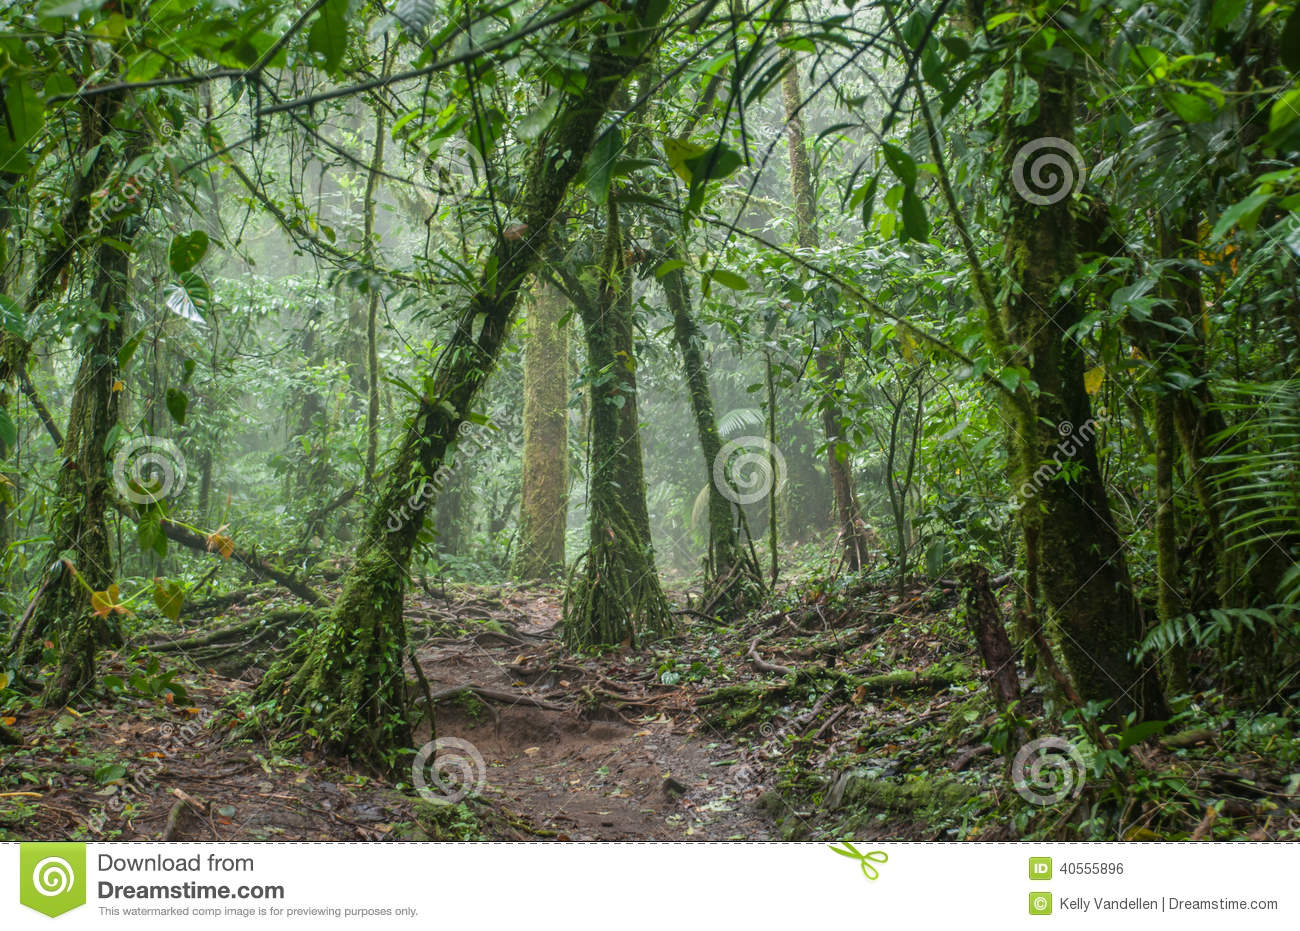 Trees Ferns Ivies And Vines Combine To Set An Eerie Feeling In A